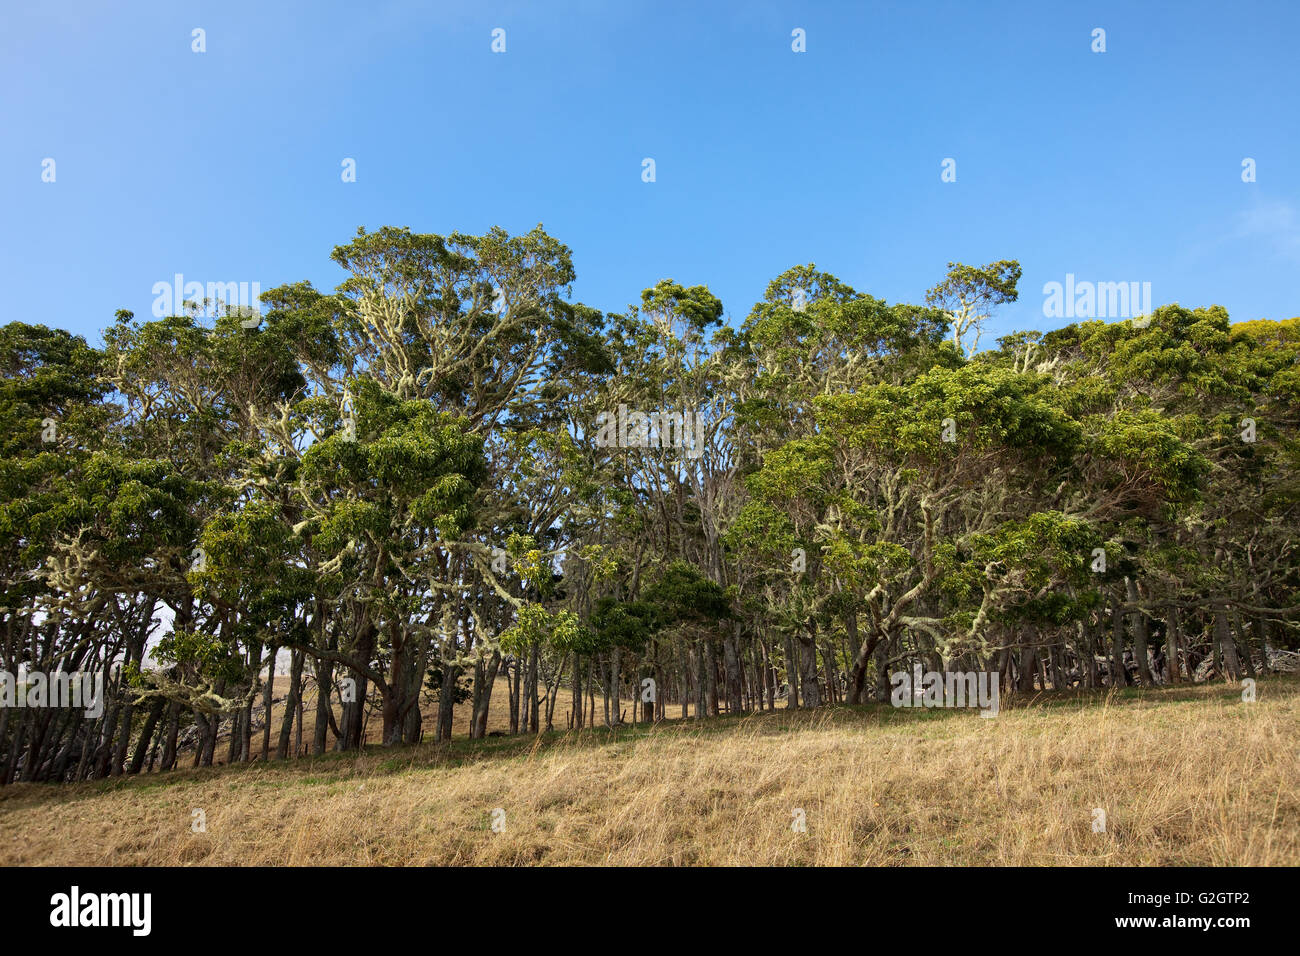 25 year old test planting, Hawaiian Legacy Hardwood, Kukaiau - Stock Image